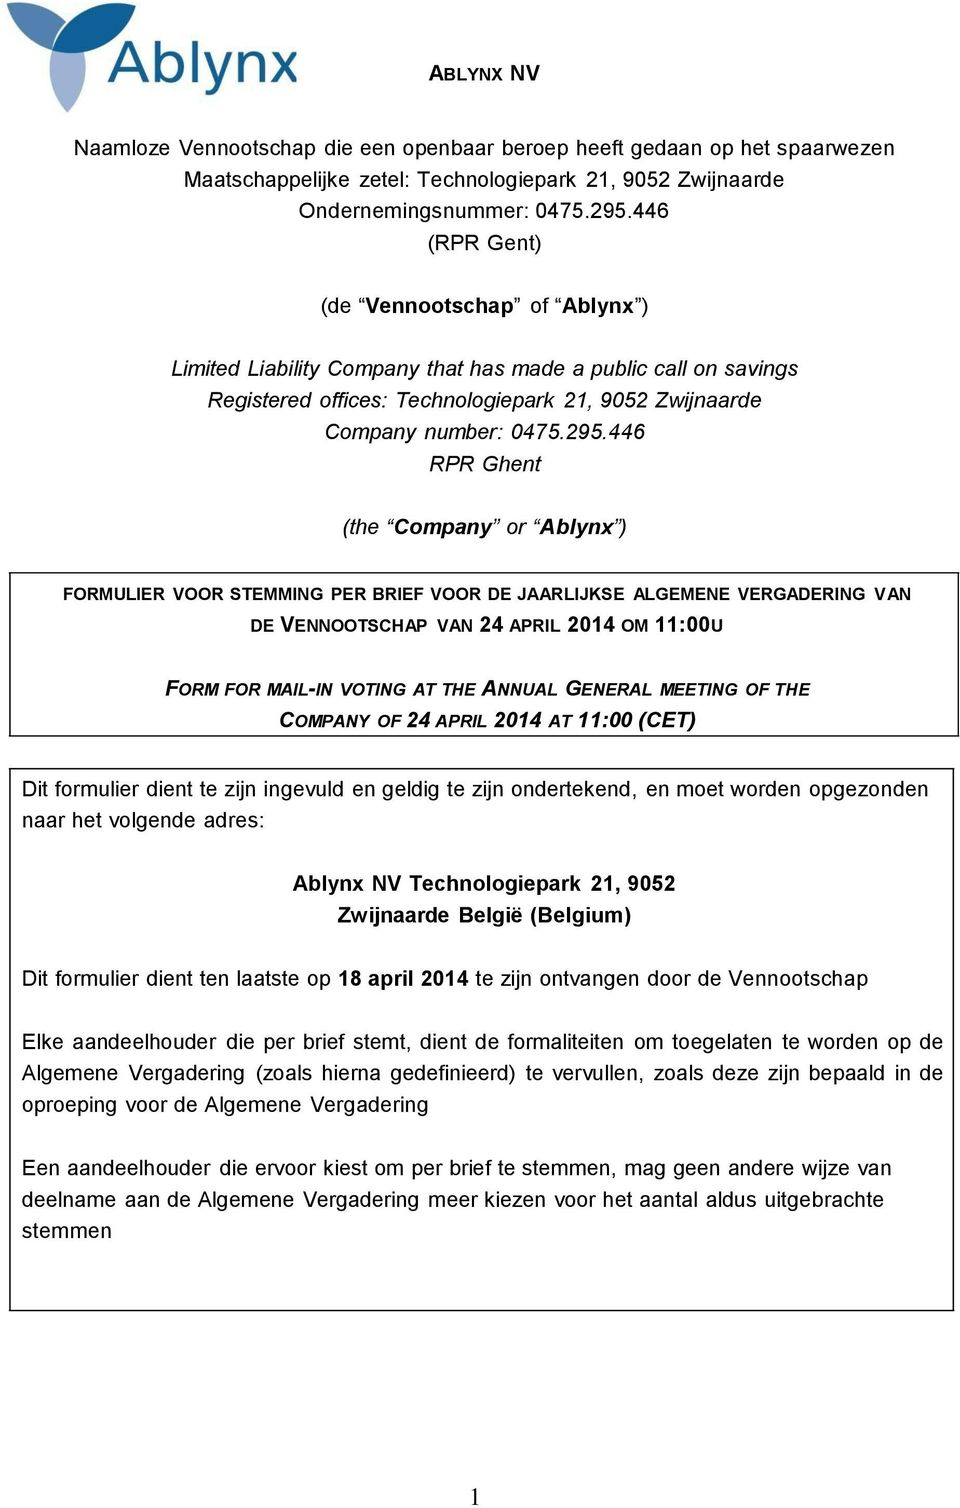 446 RPR Ghent (the Company or Ablynx ) MULIER STEMMING PER BRIEF DE JAARLIJKSE ALGEMENE VERGADERING VAN DE VENNOOTSCHAP VAN 24 APRIL 2014 OM 11:00U M MAIL-IN VOTING AT THE ANNUAL GENERAL MEETING OF